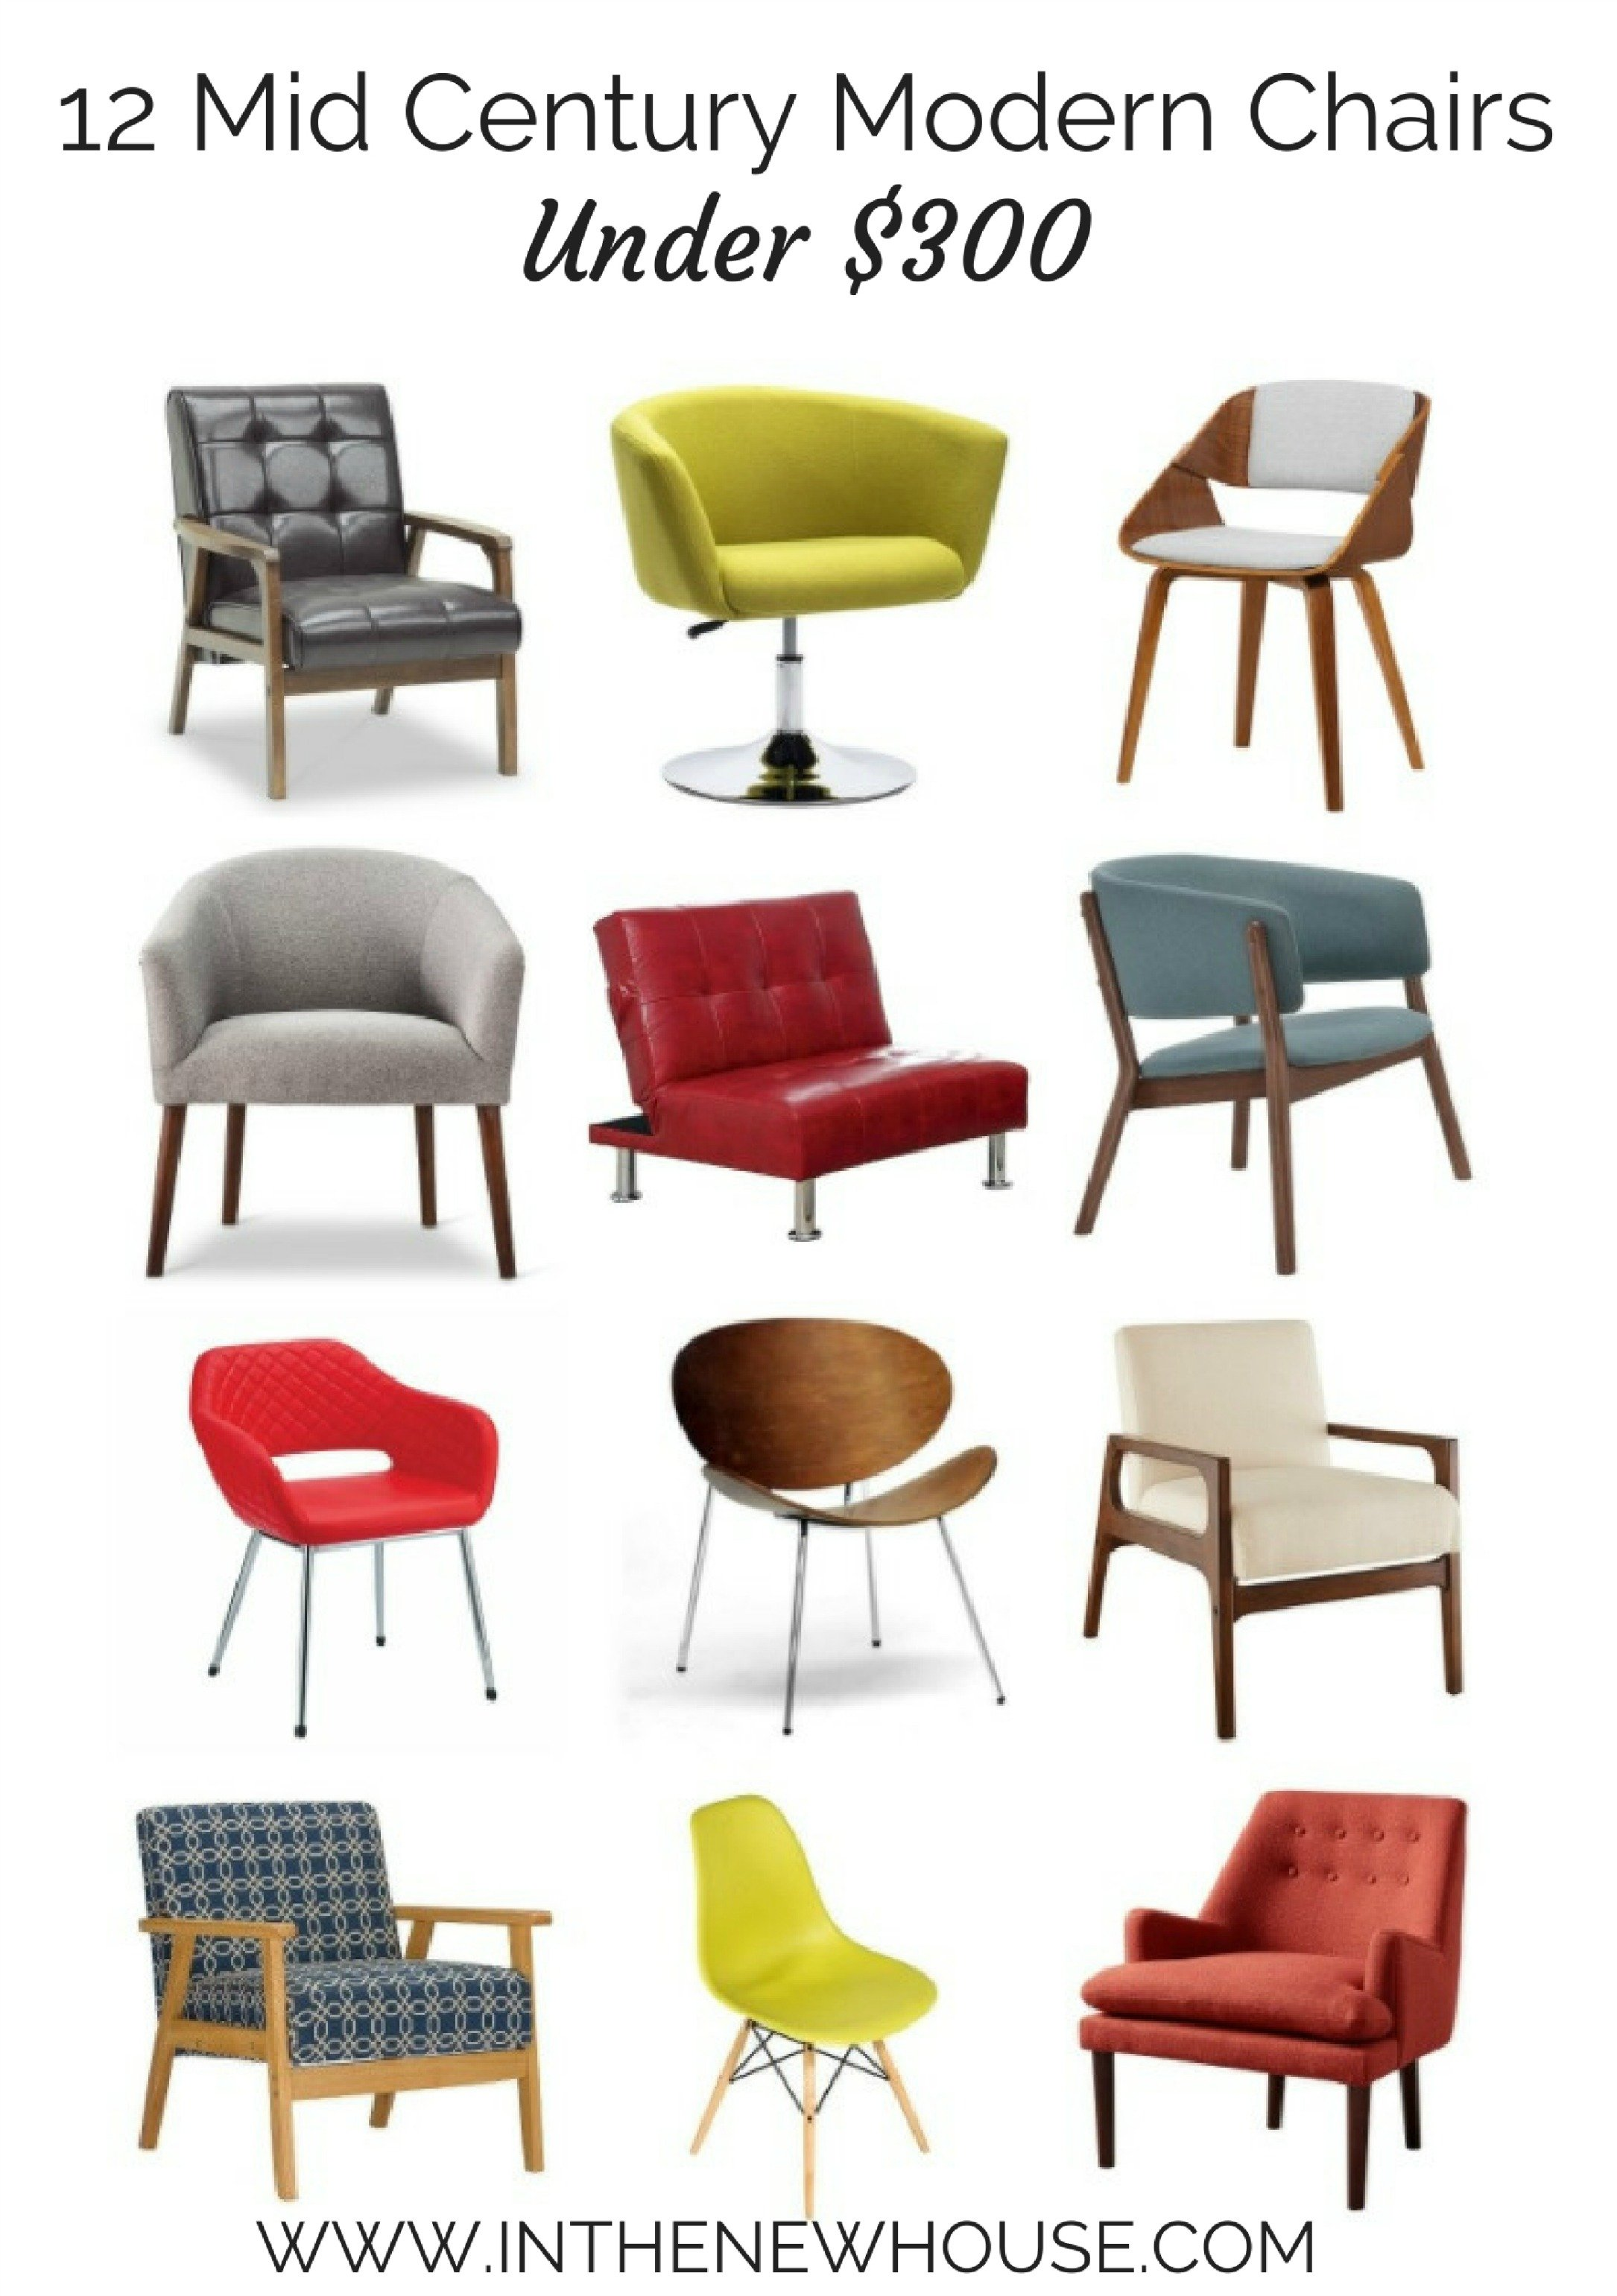 12 Mid Century Modern Chairs Under $300 In The New House